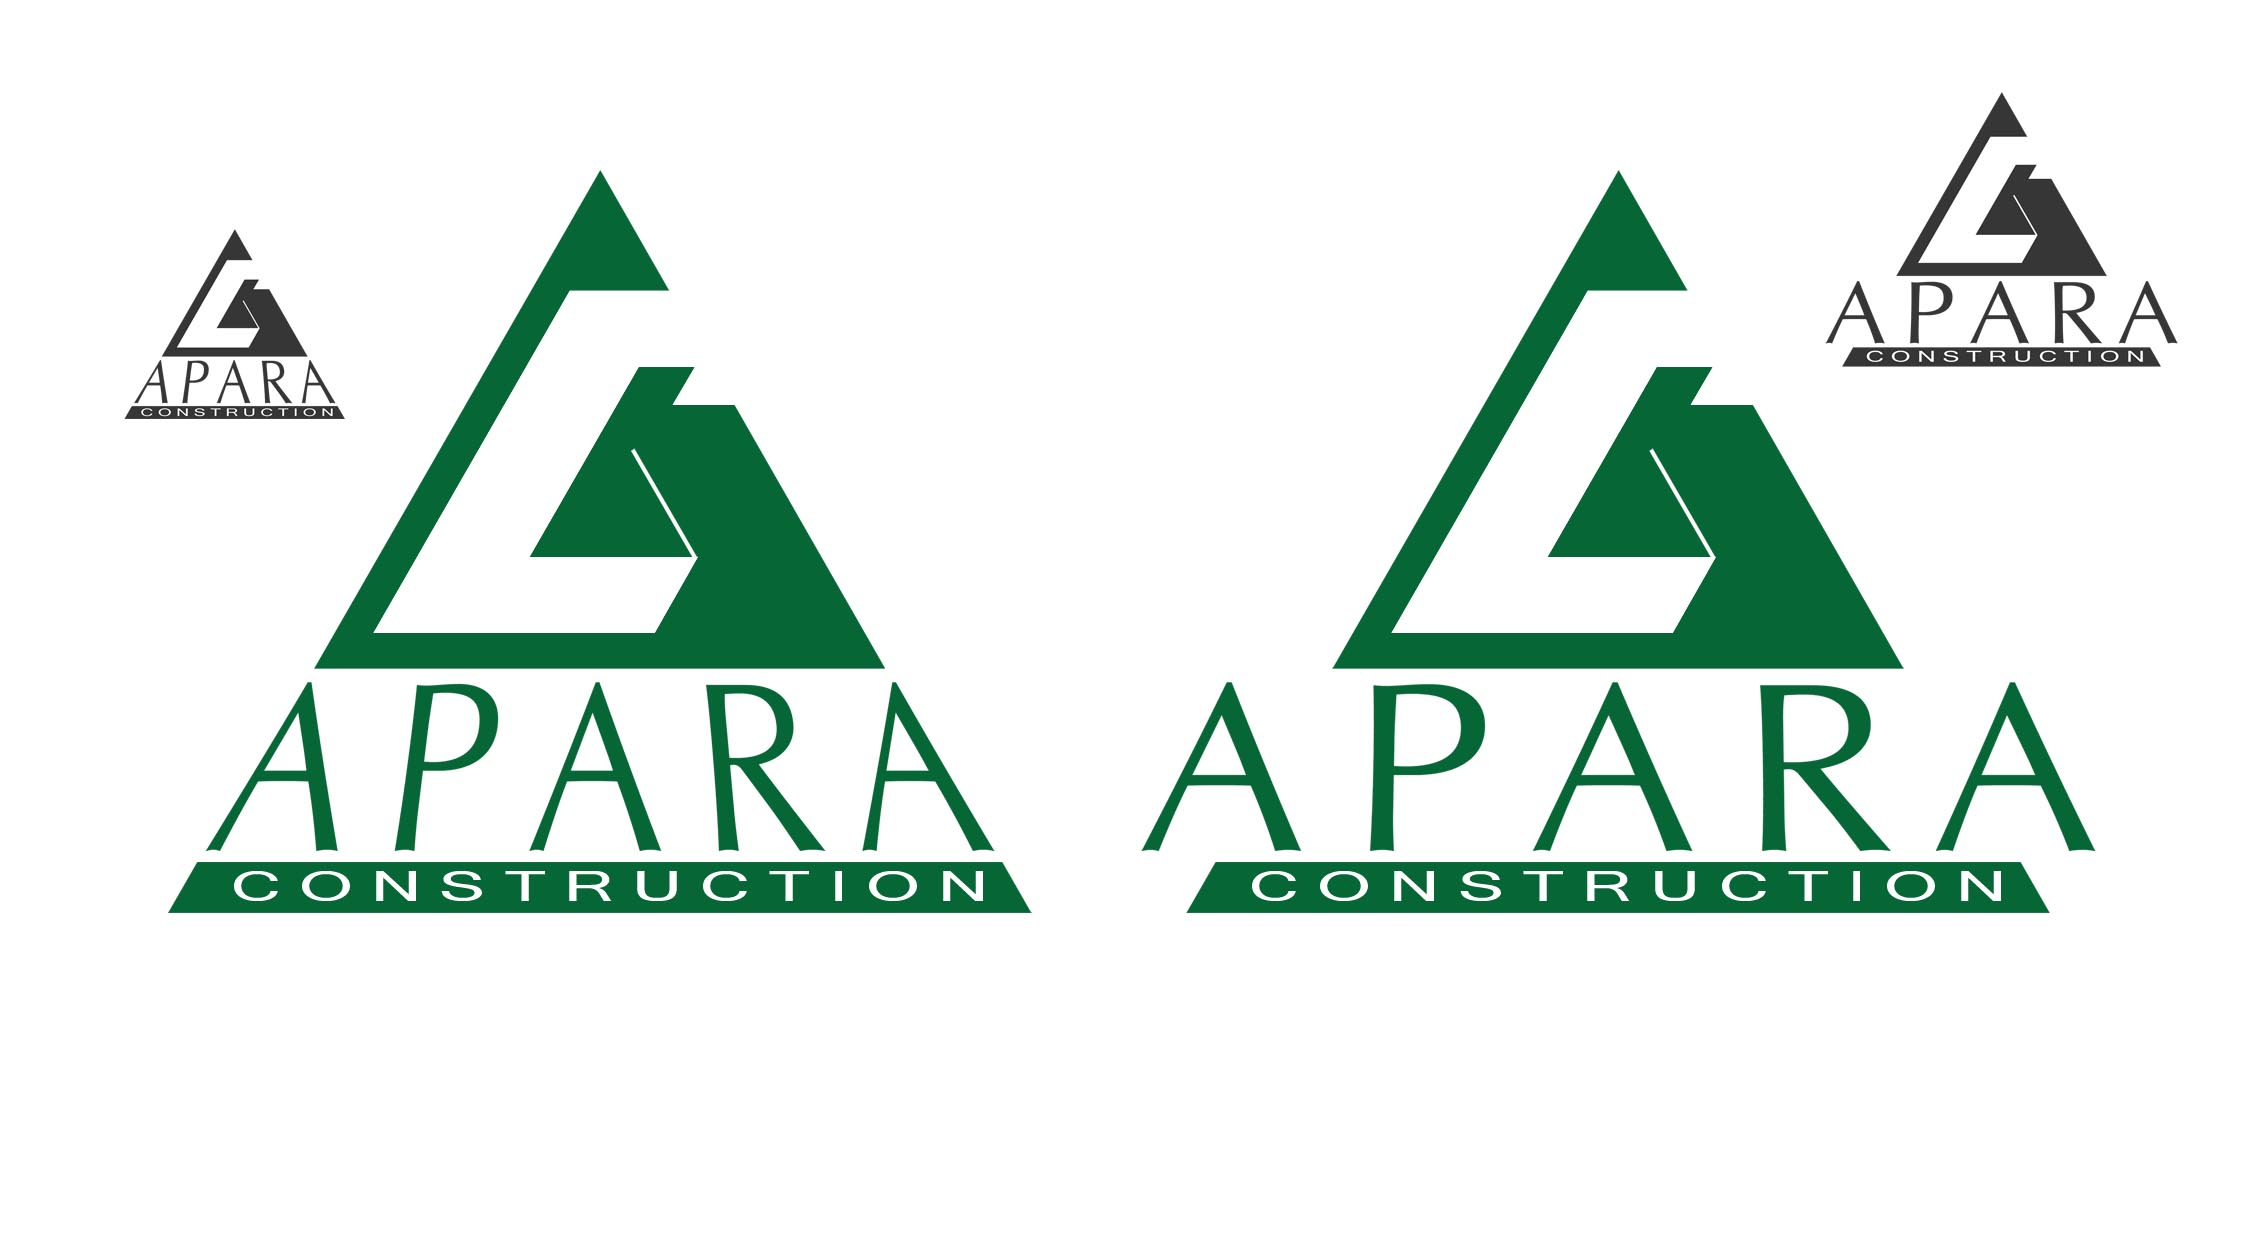 Logo Design by Cesar III Sotto - Entry No. 57 in the Logo Design Contest Apara Construction Logo Design.